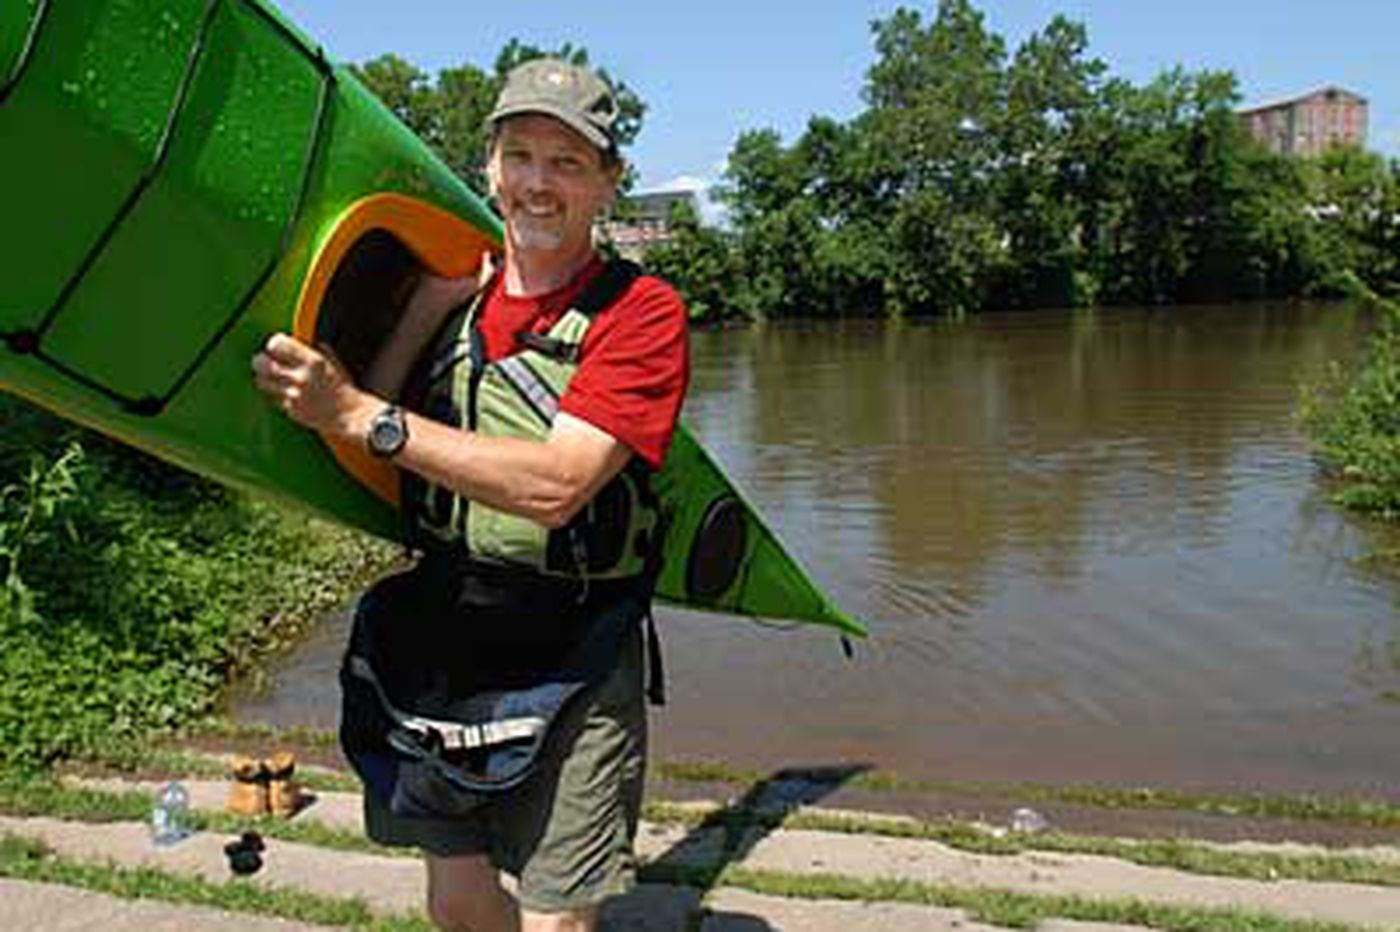 Love of kayaking led to Schuylkill business